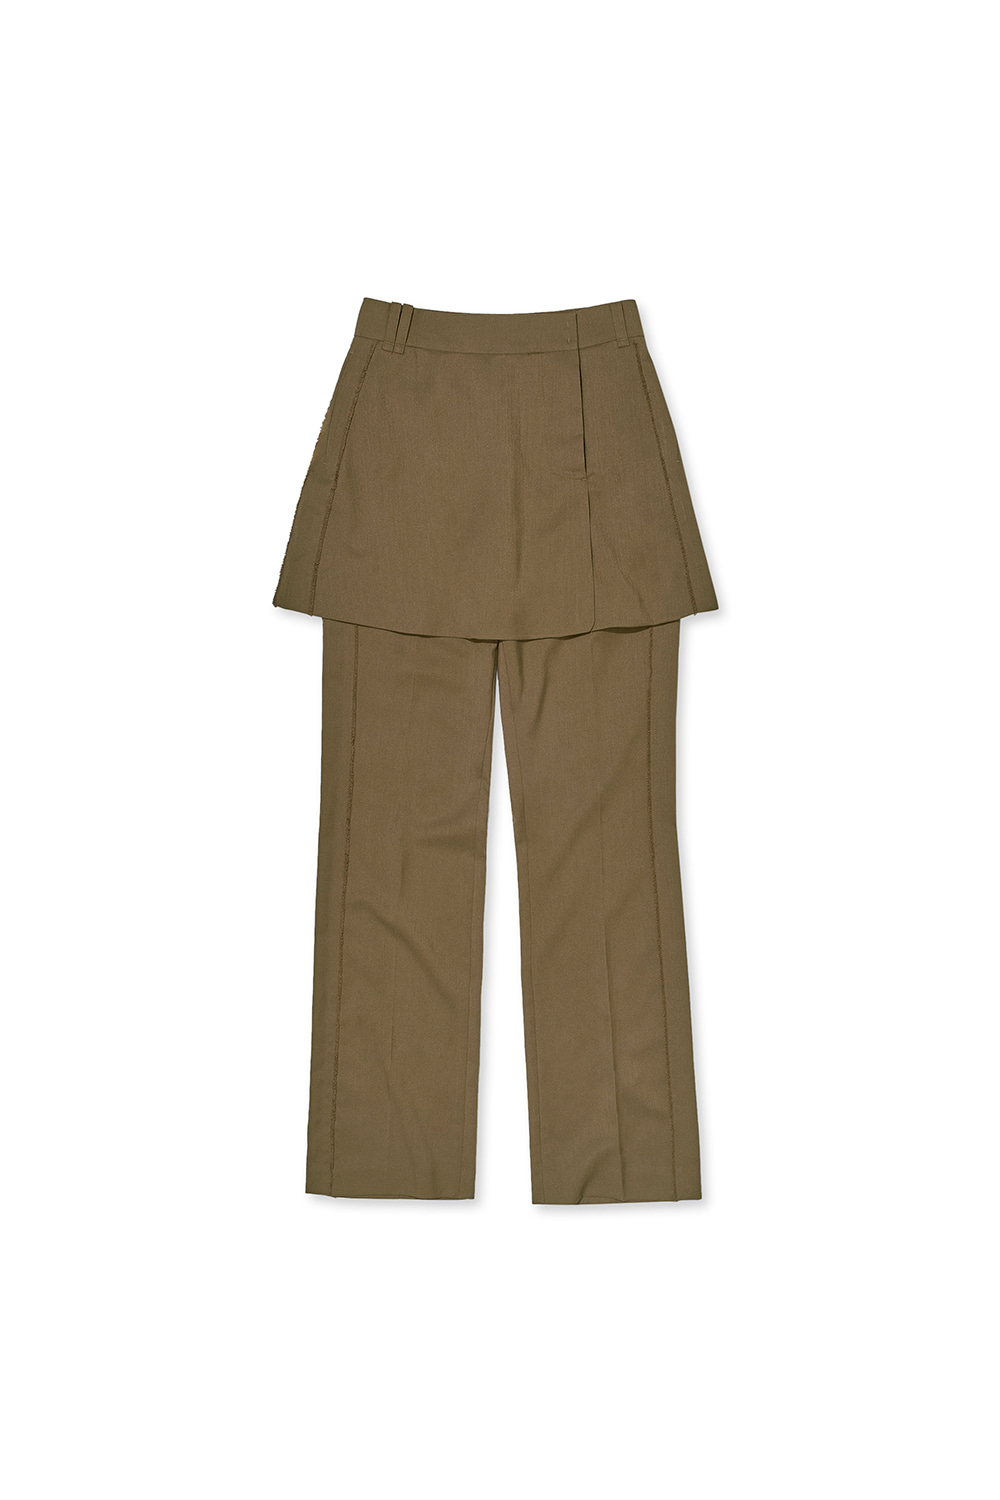 CUT OFF LAYERED PANTS KS [CAMEL]